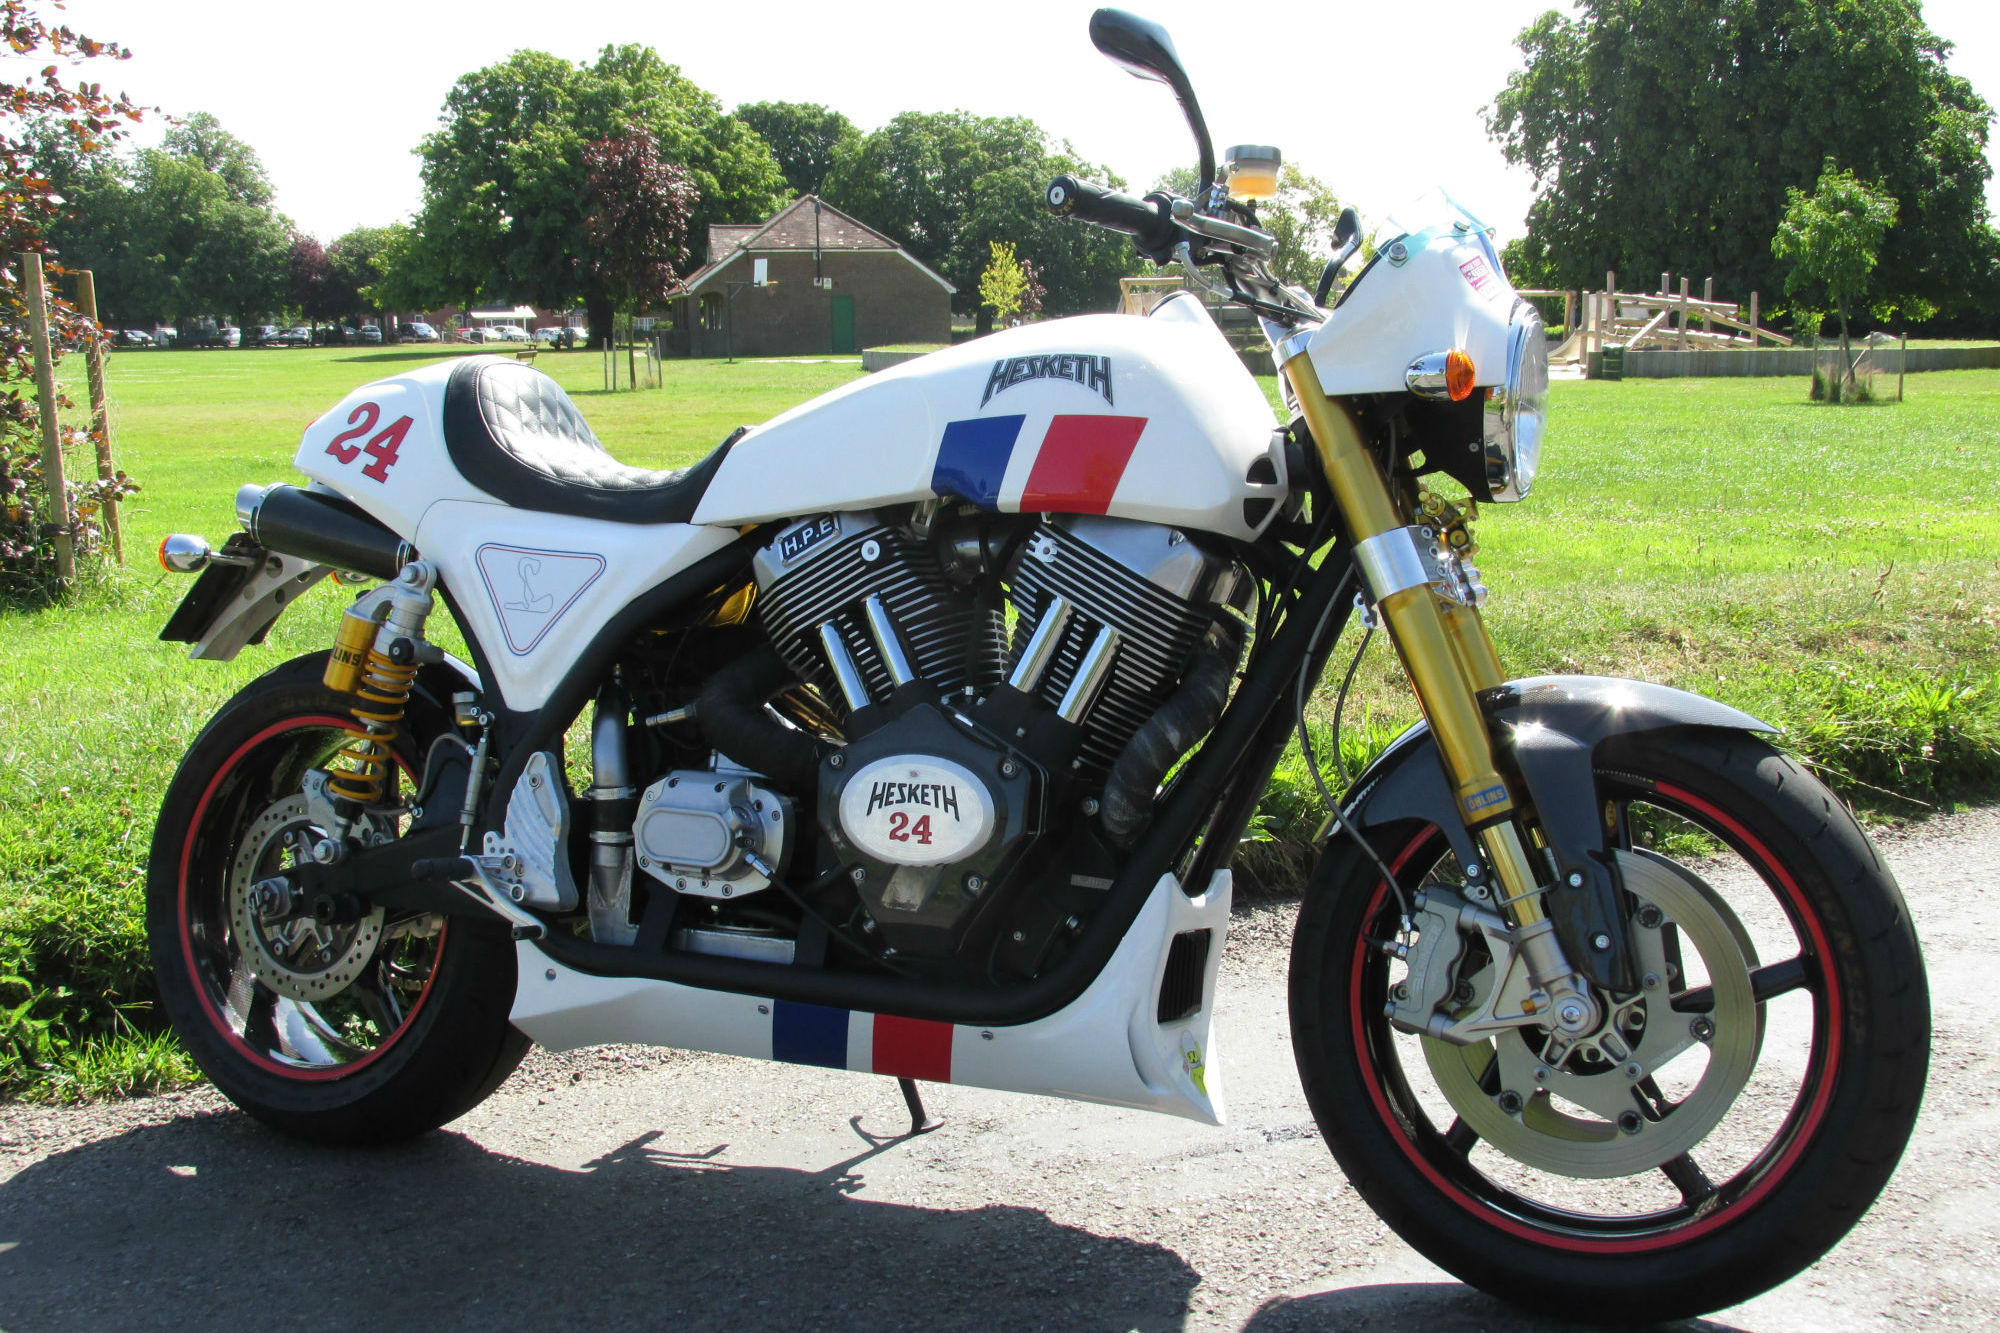 World first test: Hesketh 24 review